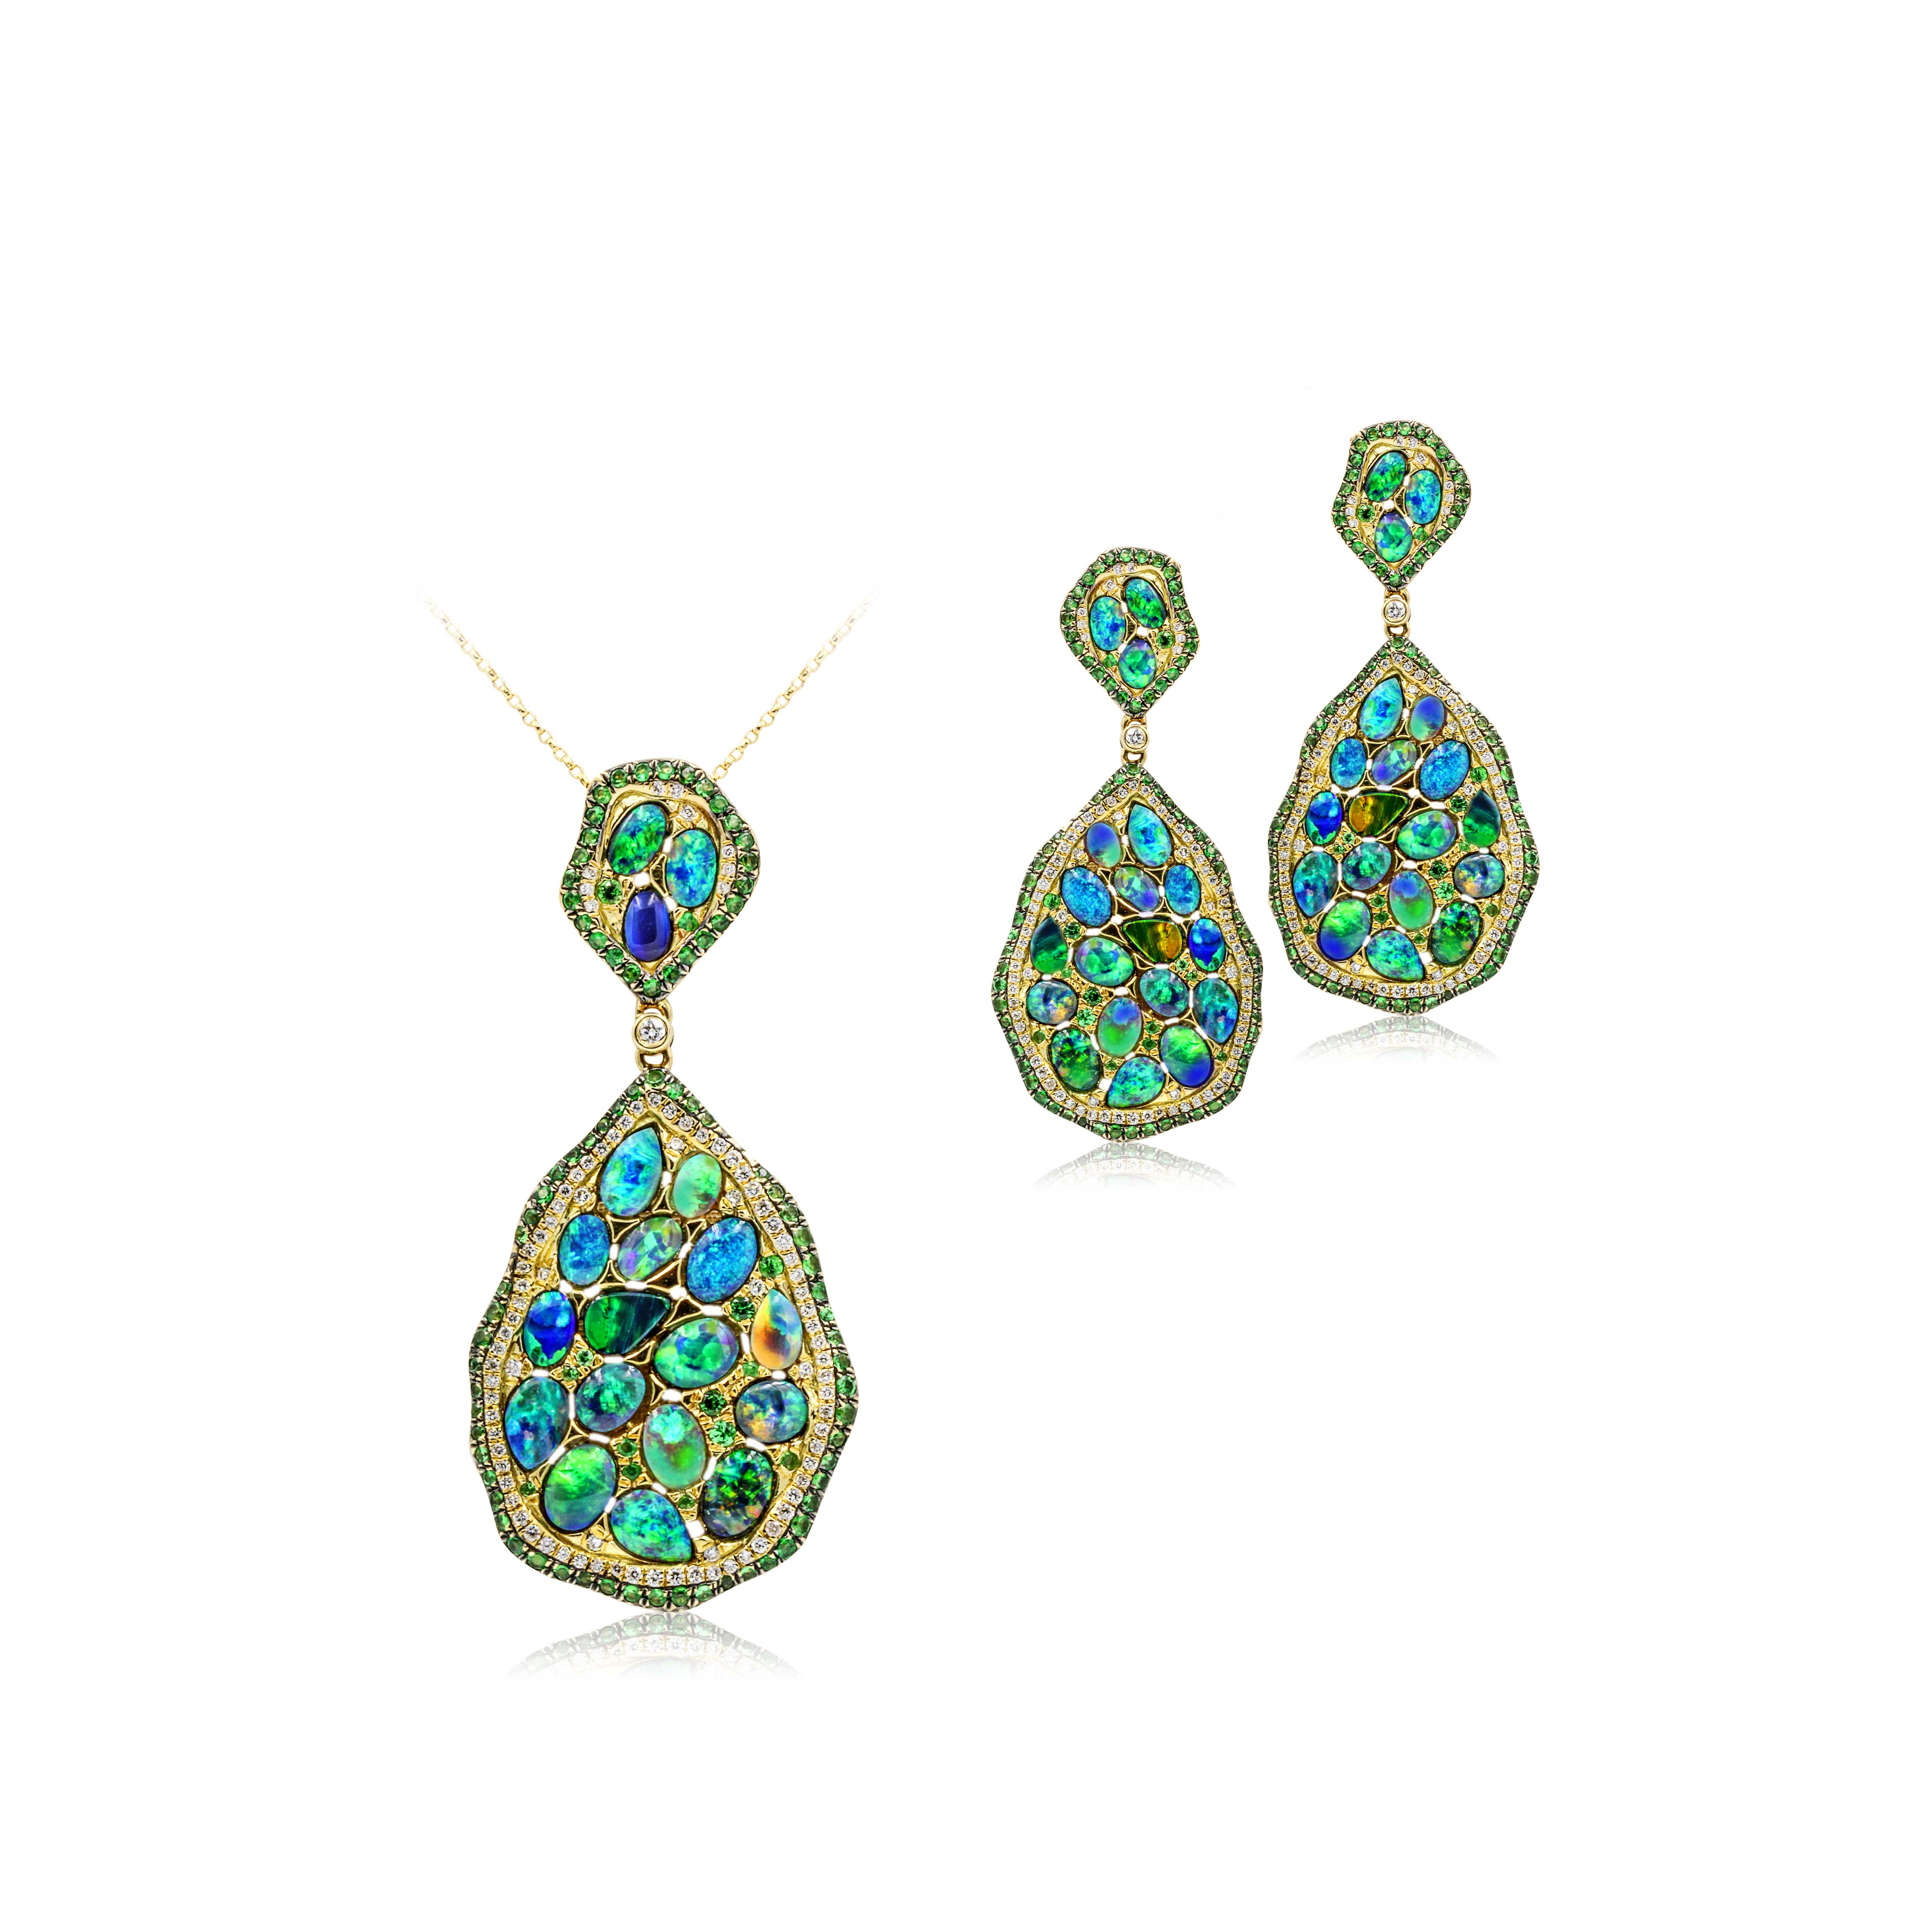 Black Opal Pendant and Earrings set in 18k with Diamonds featuring Peacock Green and Blue Colours